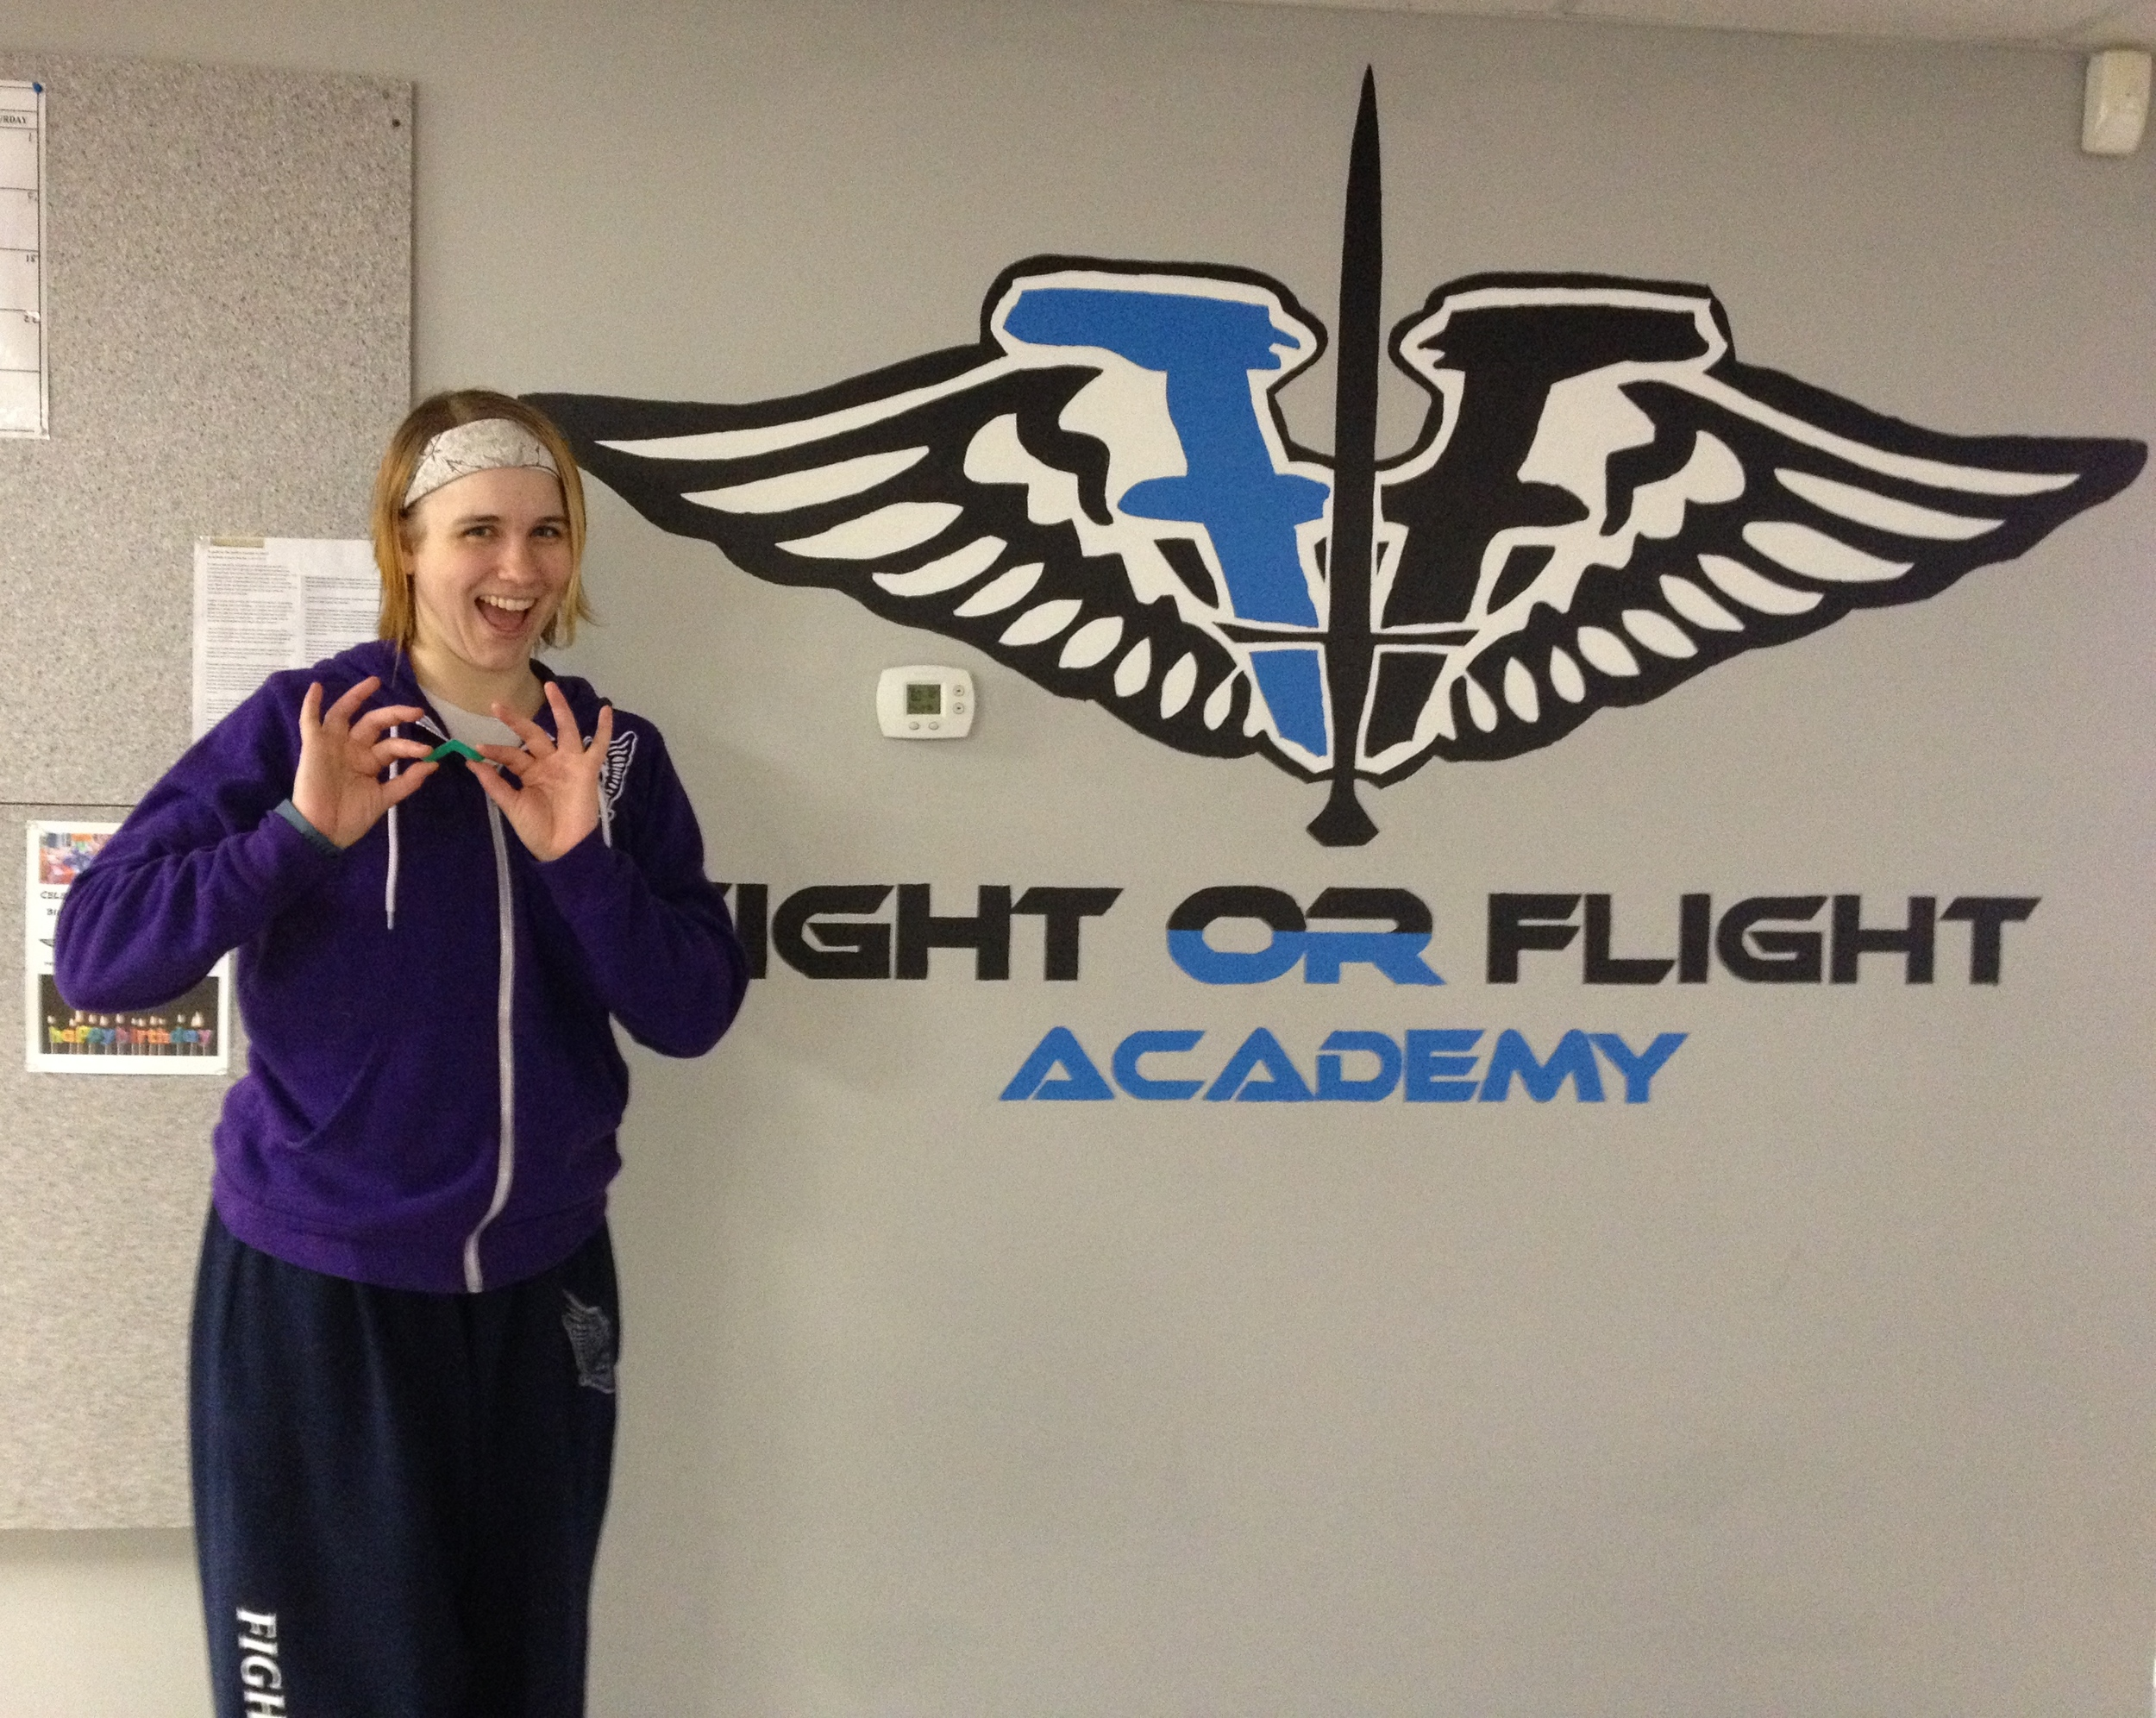 I went to Fight or Flight Academy and all I got was this silly green pointy thing!